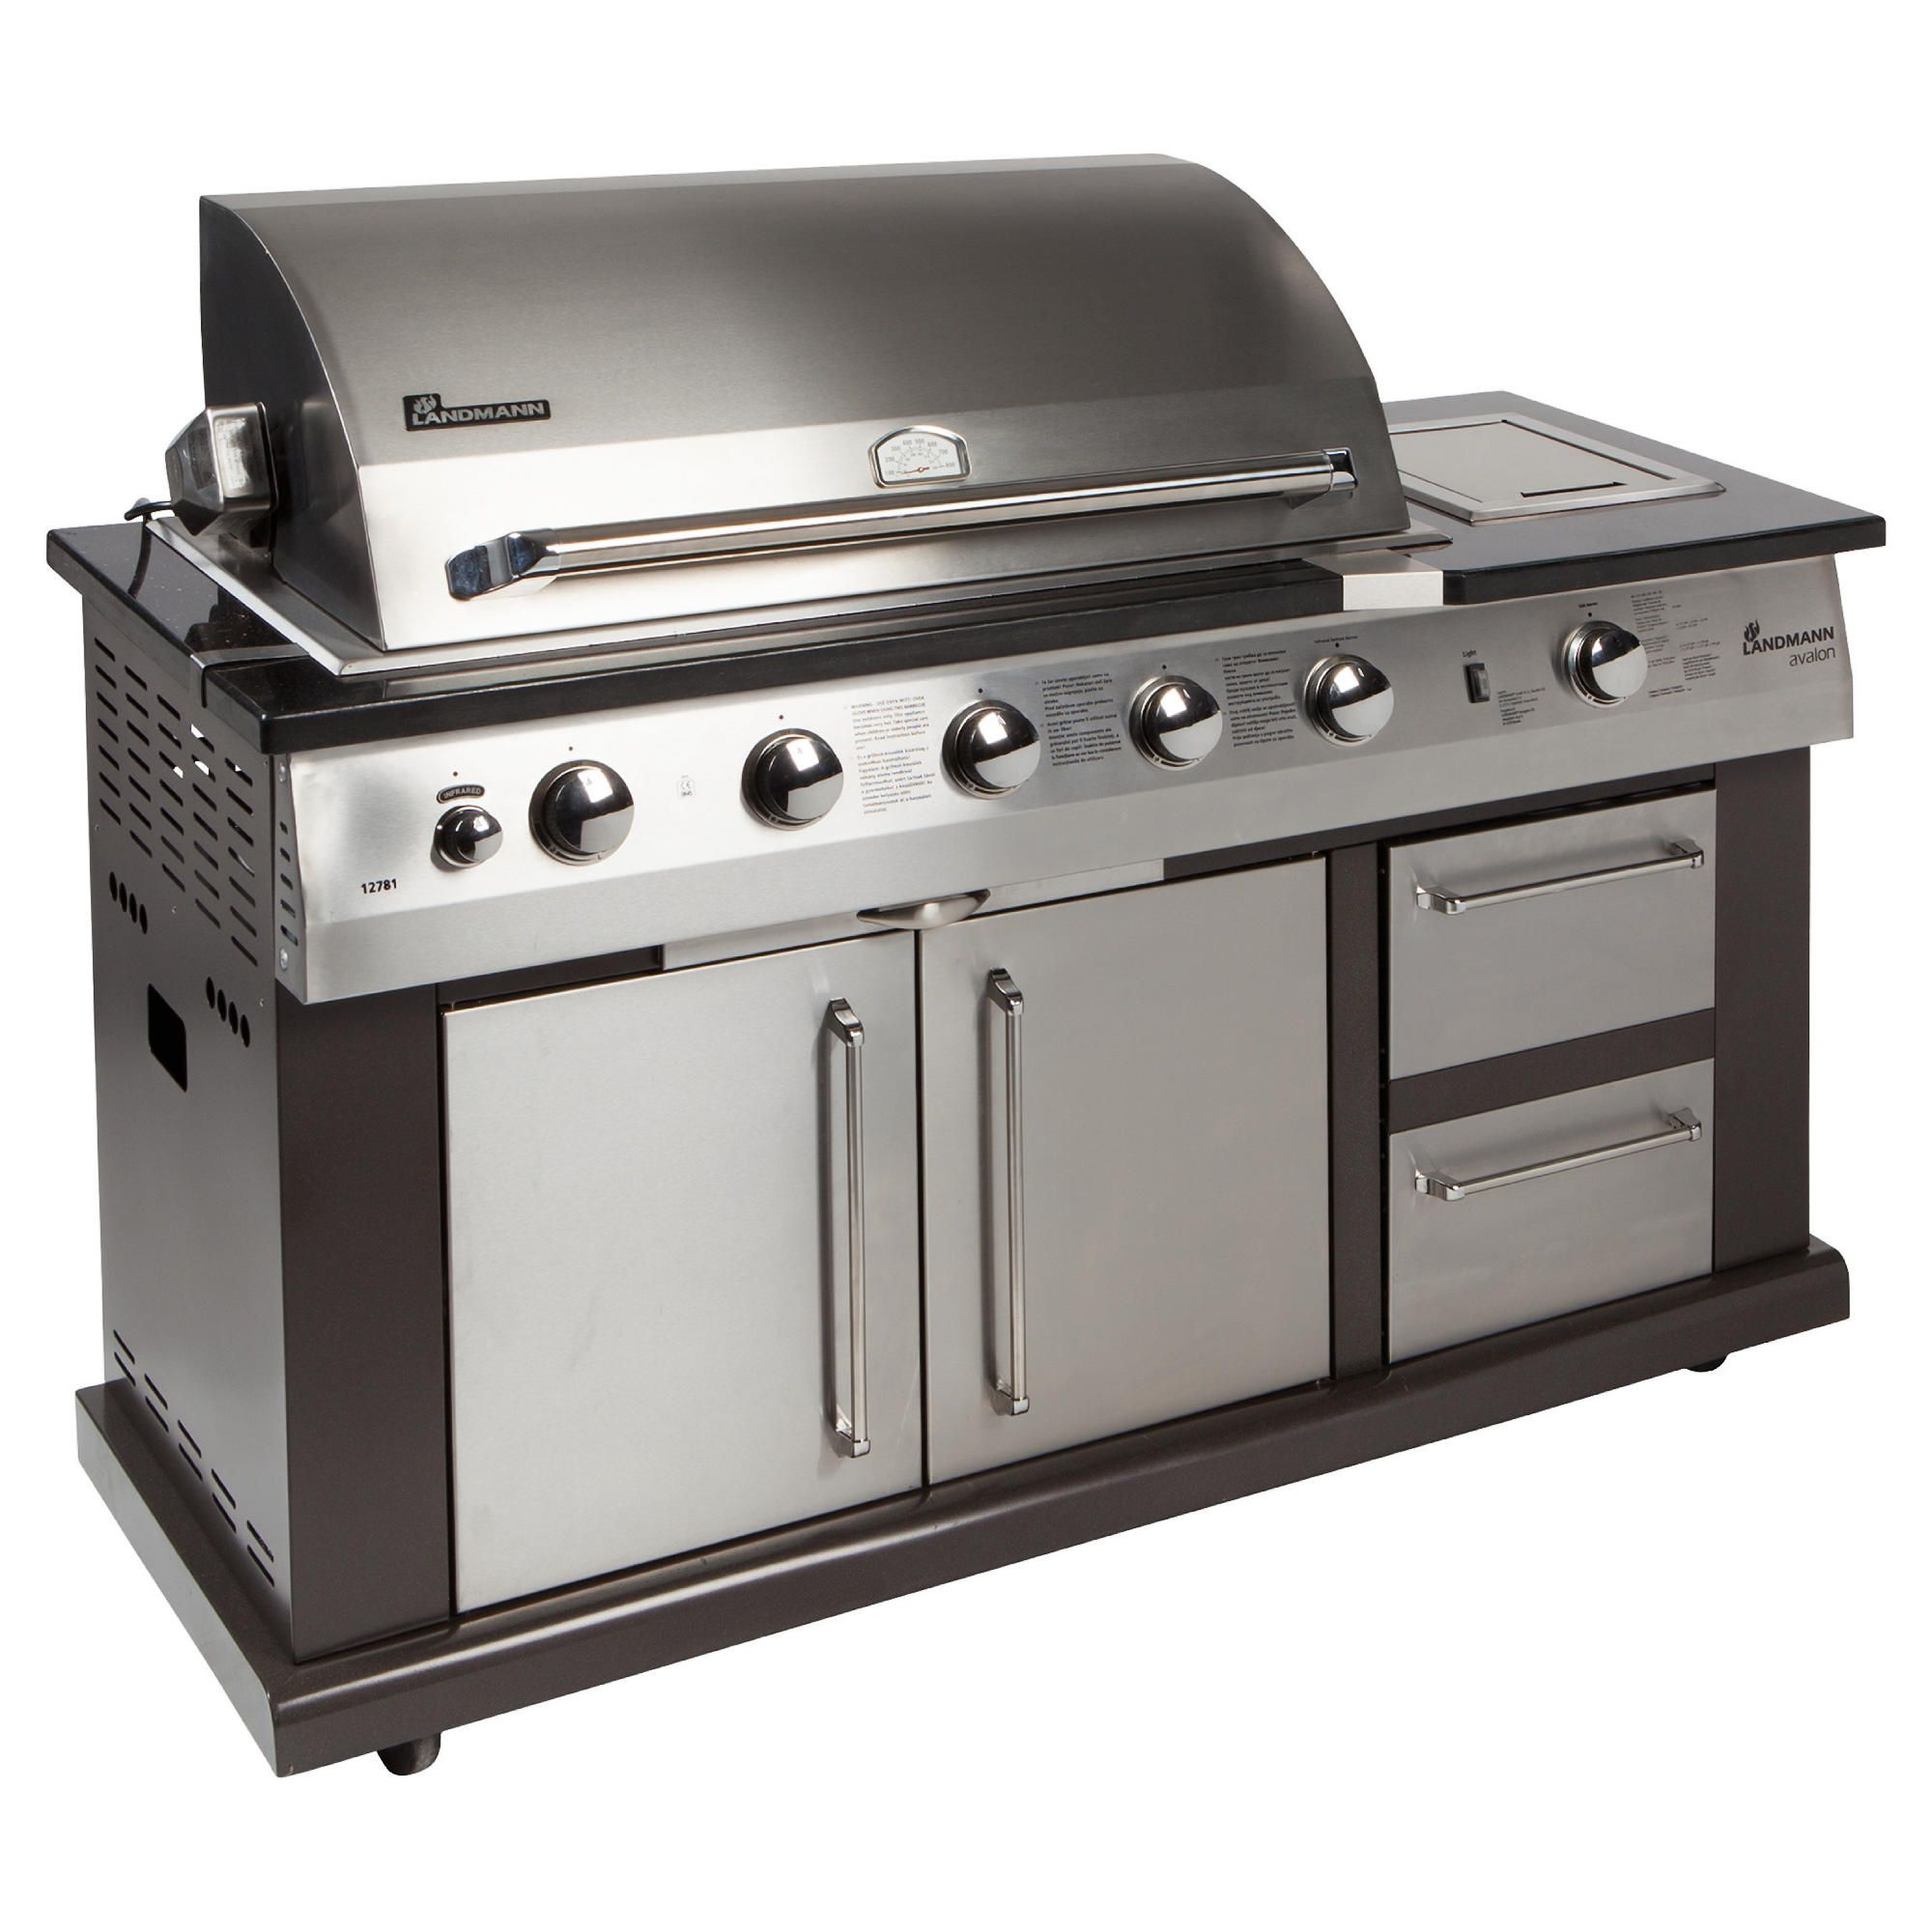 Landmann Avalon 5 Burner Gas BBQ with Infra-red Rotisserie at Tesco Direct